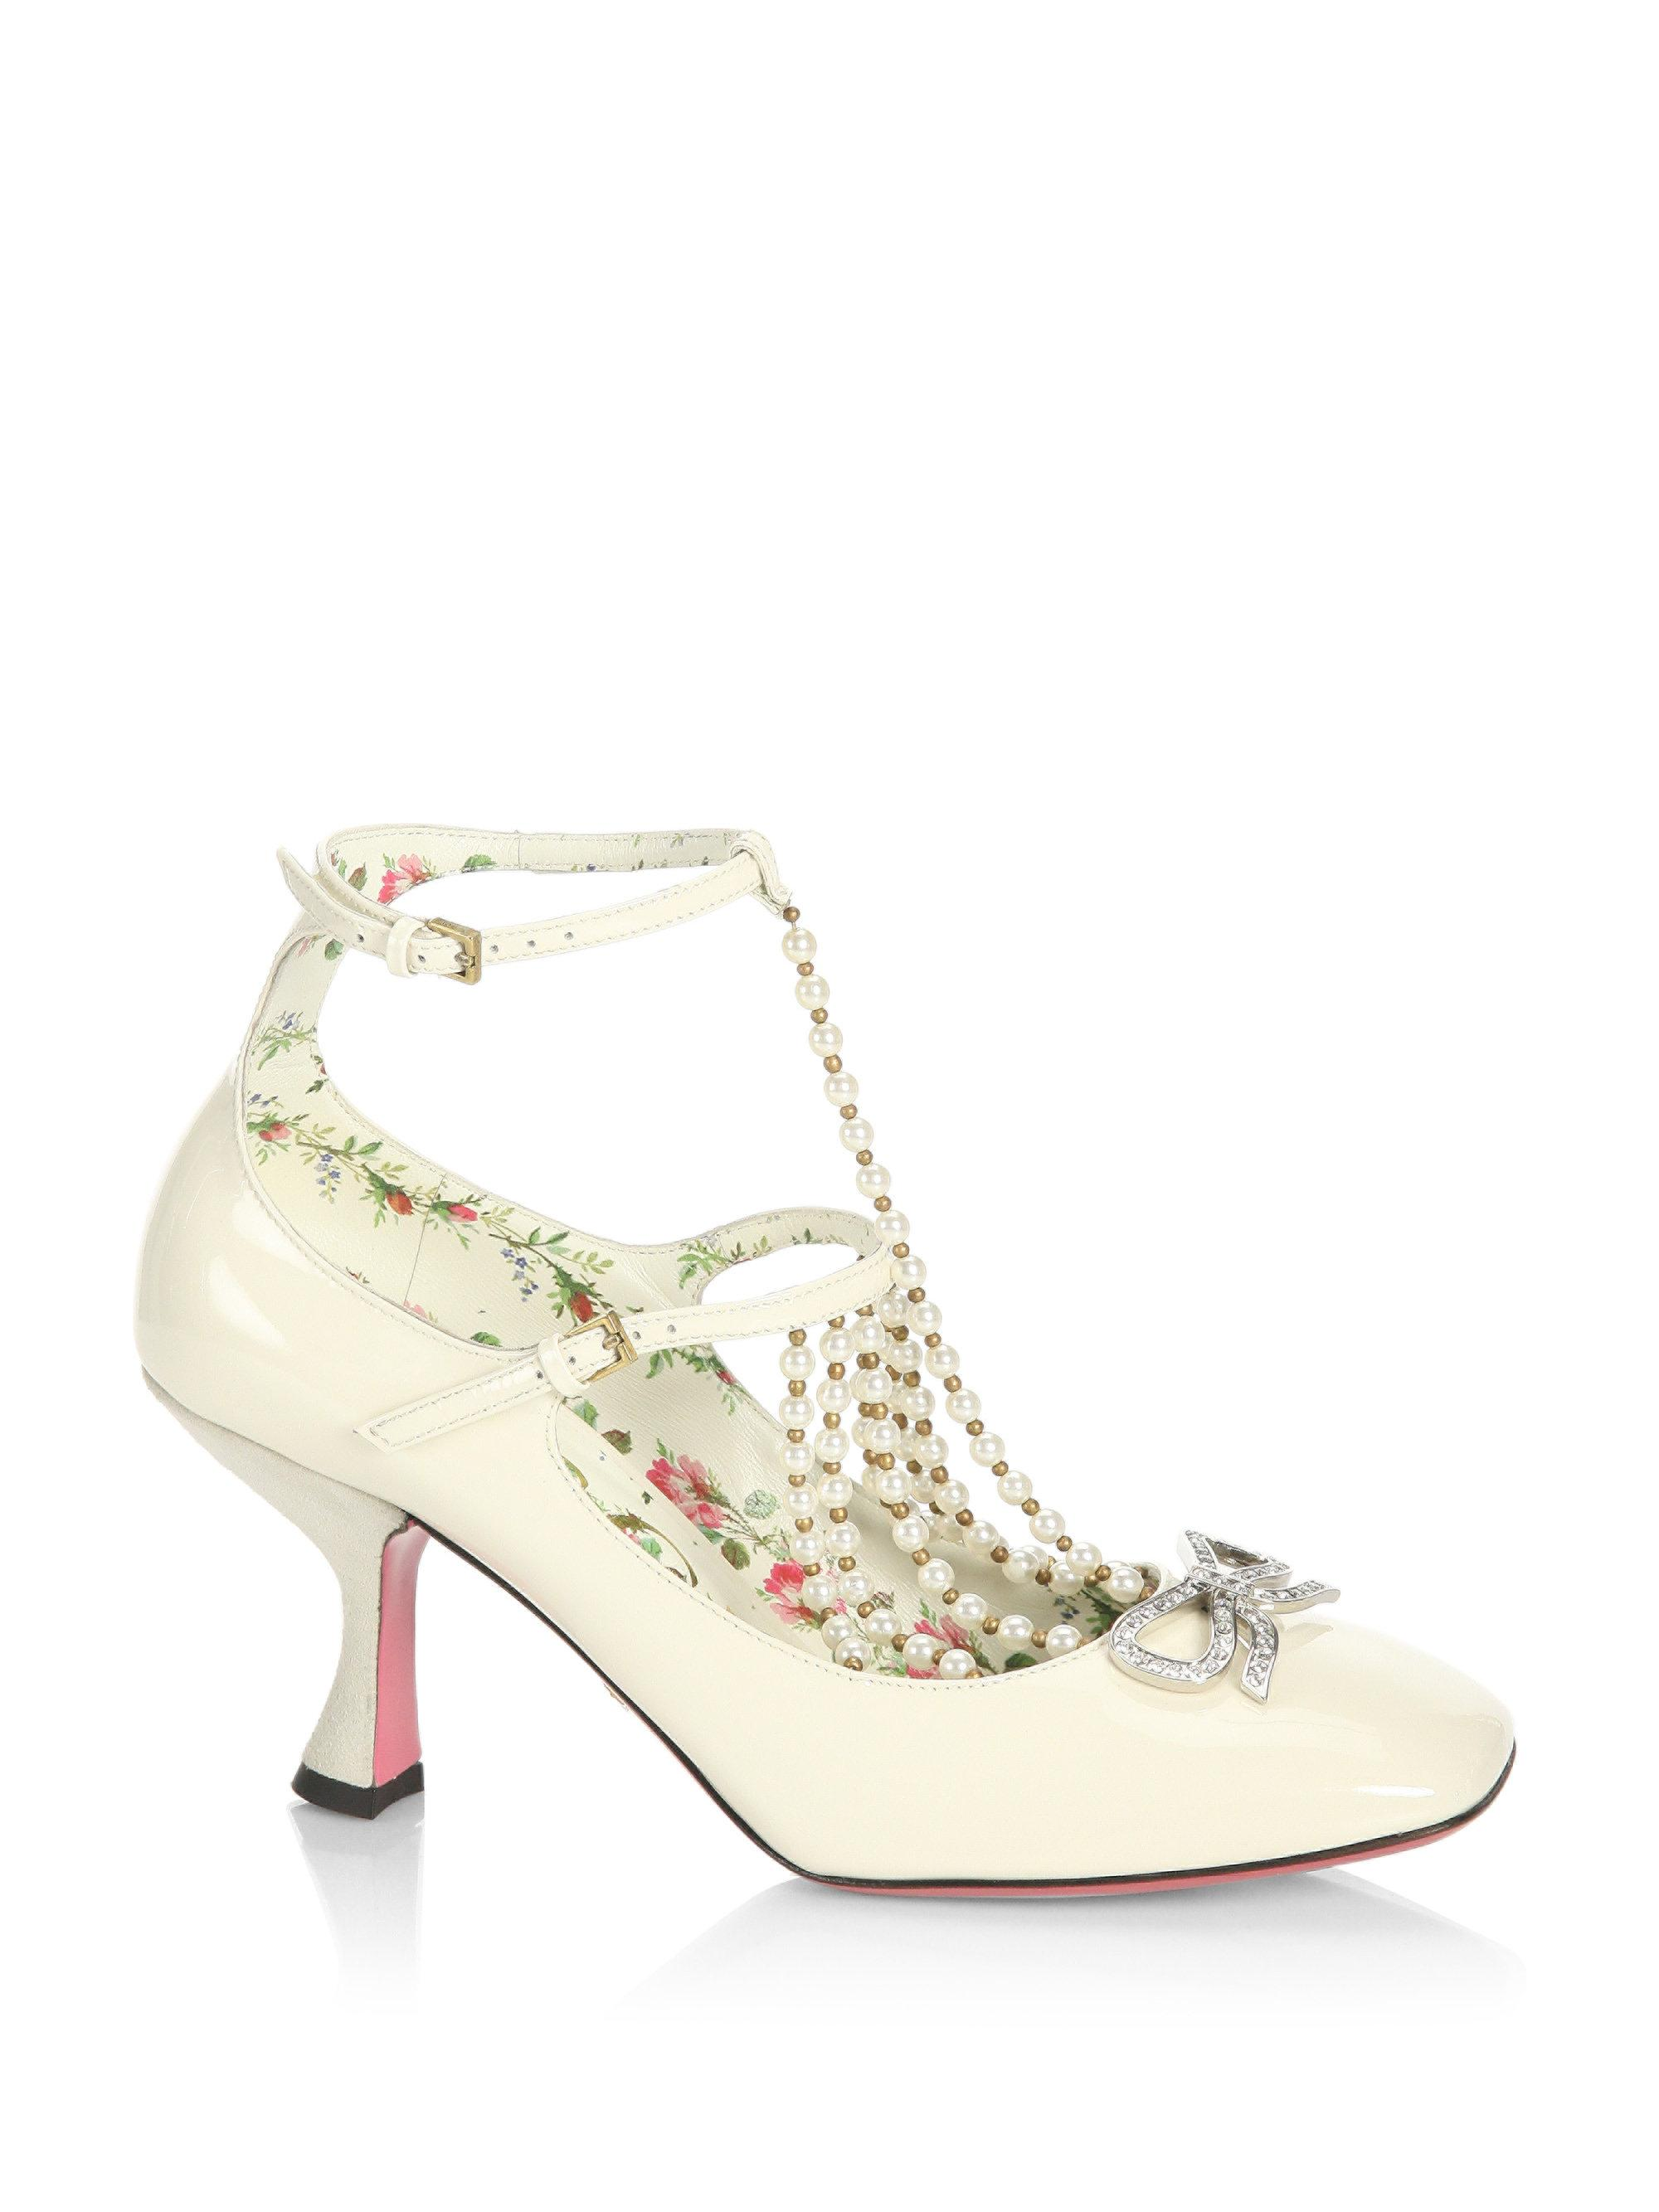 af8ff5ddf Gucci Taide Pearl-embellished Patent Leather Mary Jane Pumps in ...